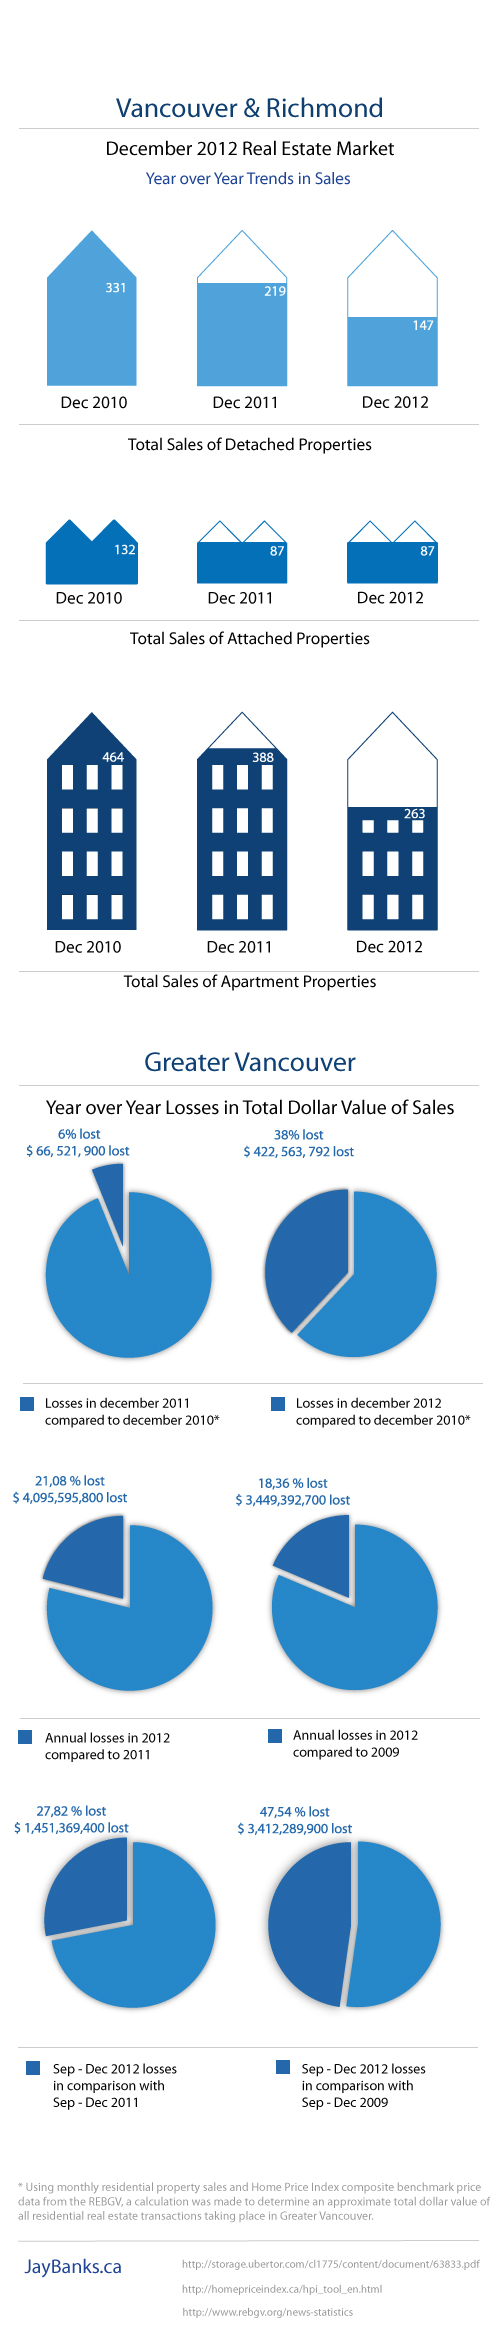 Infographic Vancouver Richmond real estate statistics 2012 Jay Banks2